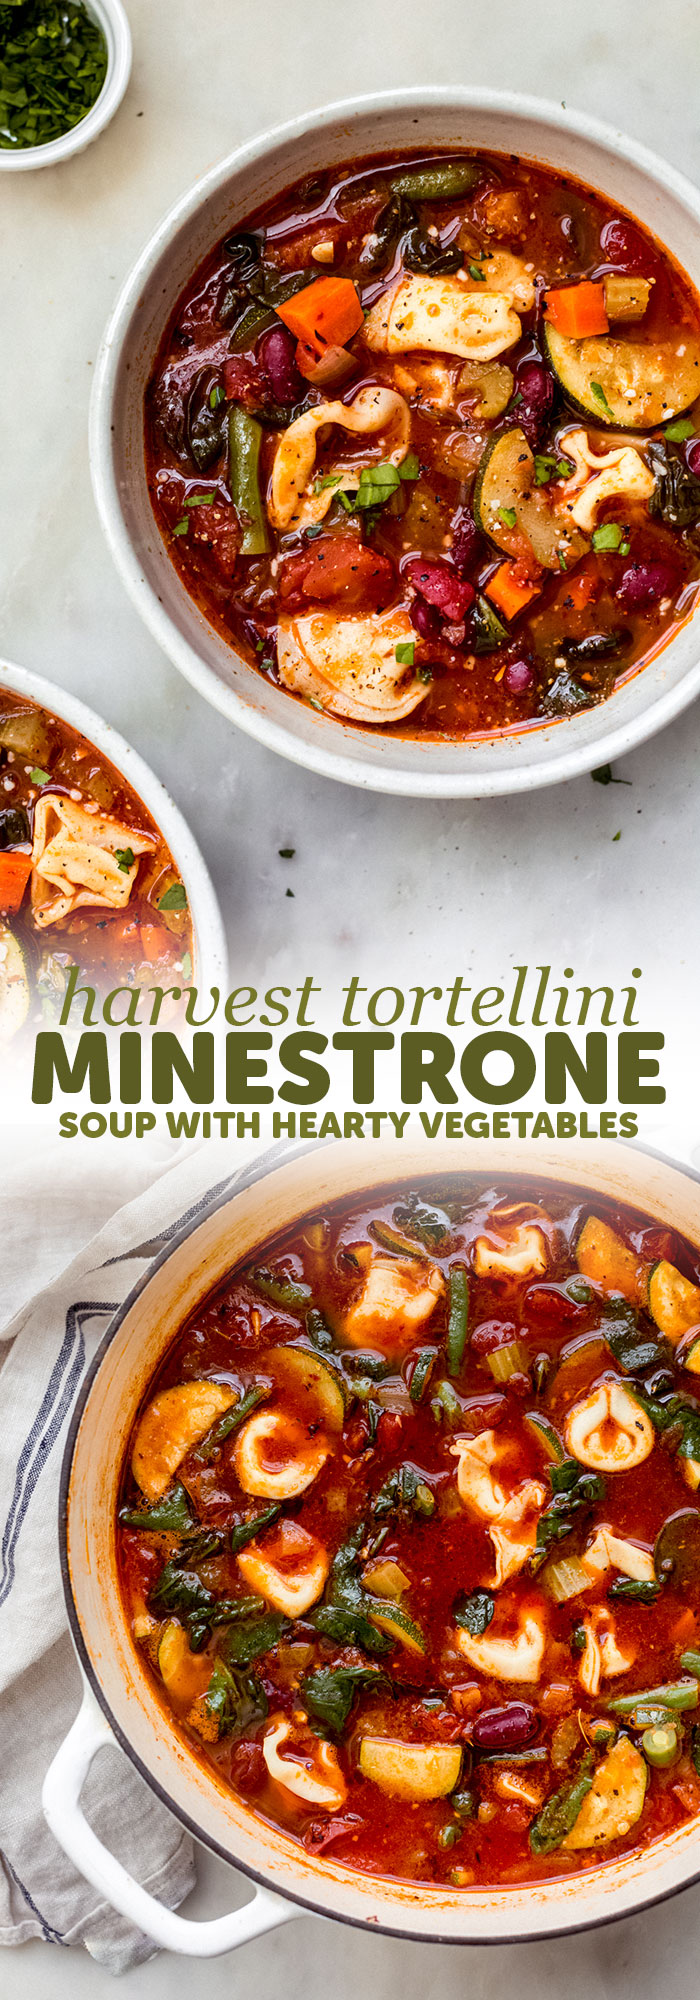 Fire-roasted Tortellini Minestrone Soup - a quick and hearty take on the traditional minestrone. Mine is a stove-top version that uses tortellini instead of pasta. Great for boxed lunches or as a starter to dinner guests! #minestronesoup #tortellini #tortelliniminestrone #minstrone #vegetablesoup | Littlespicejar.com